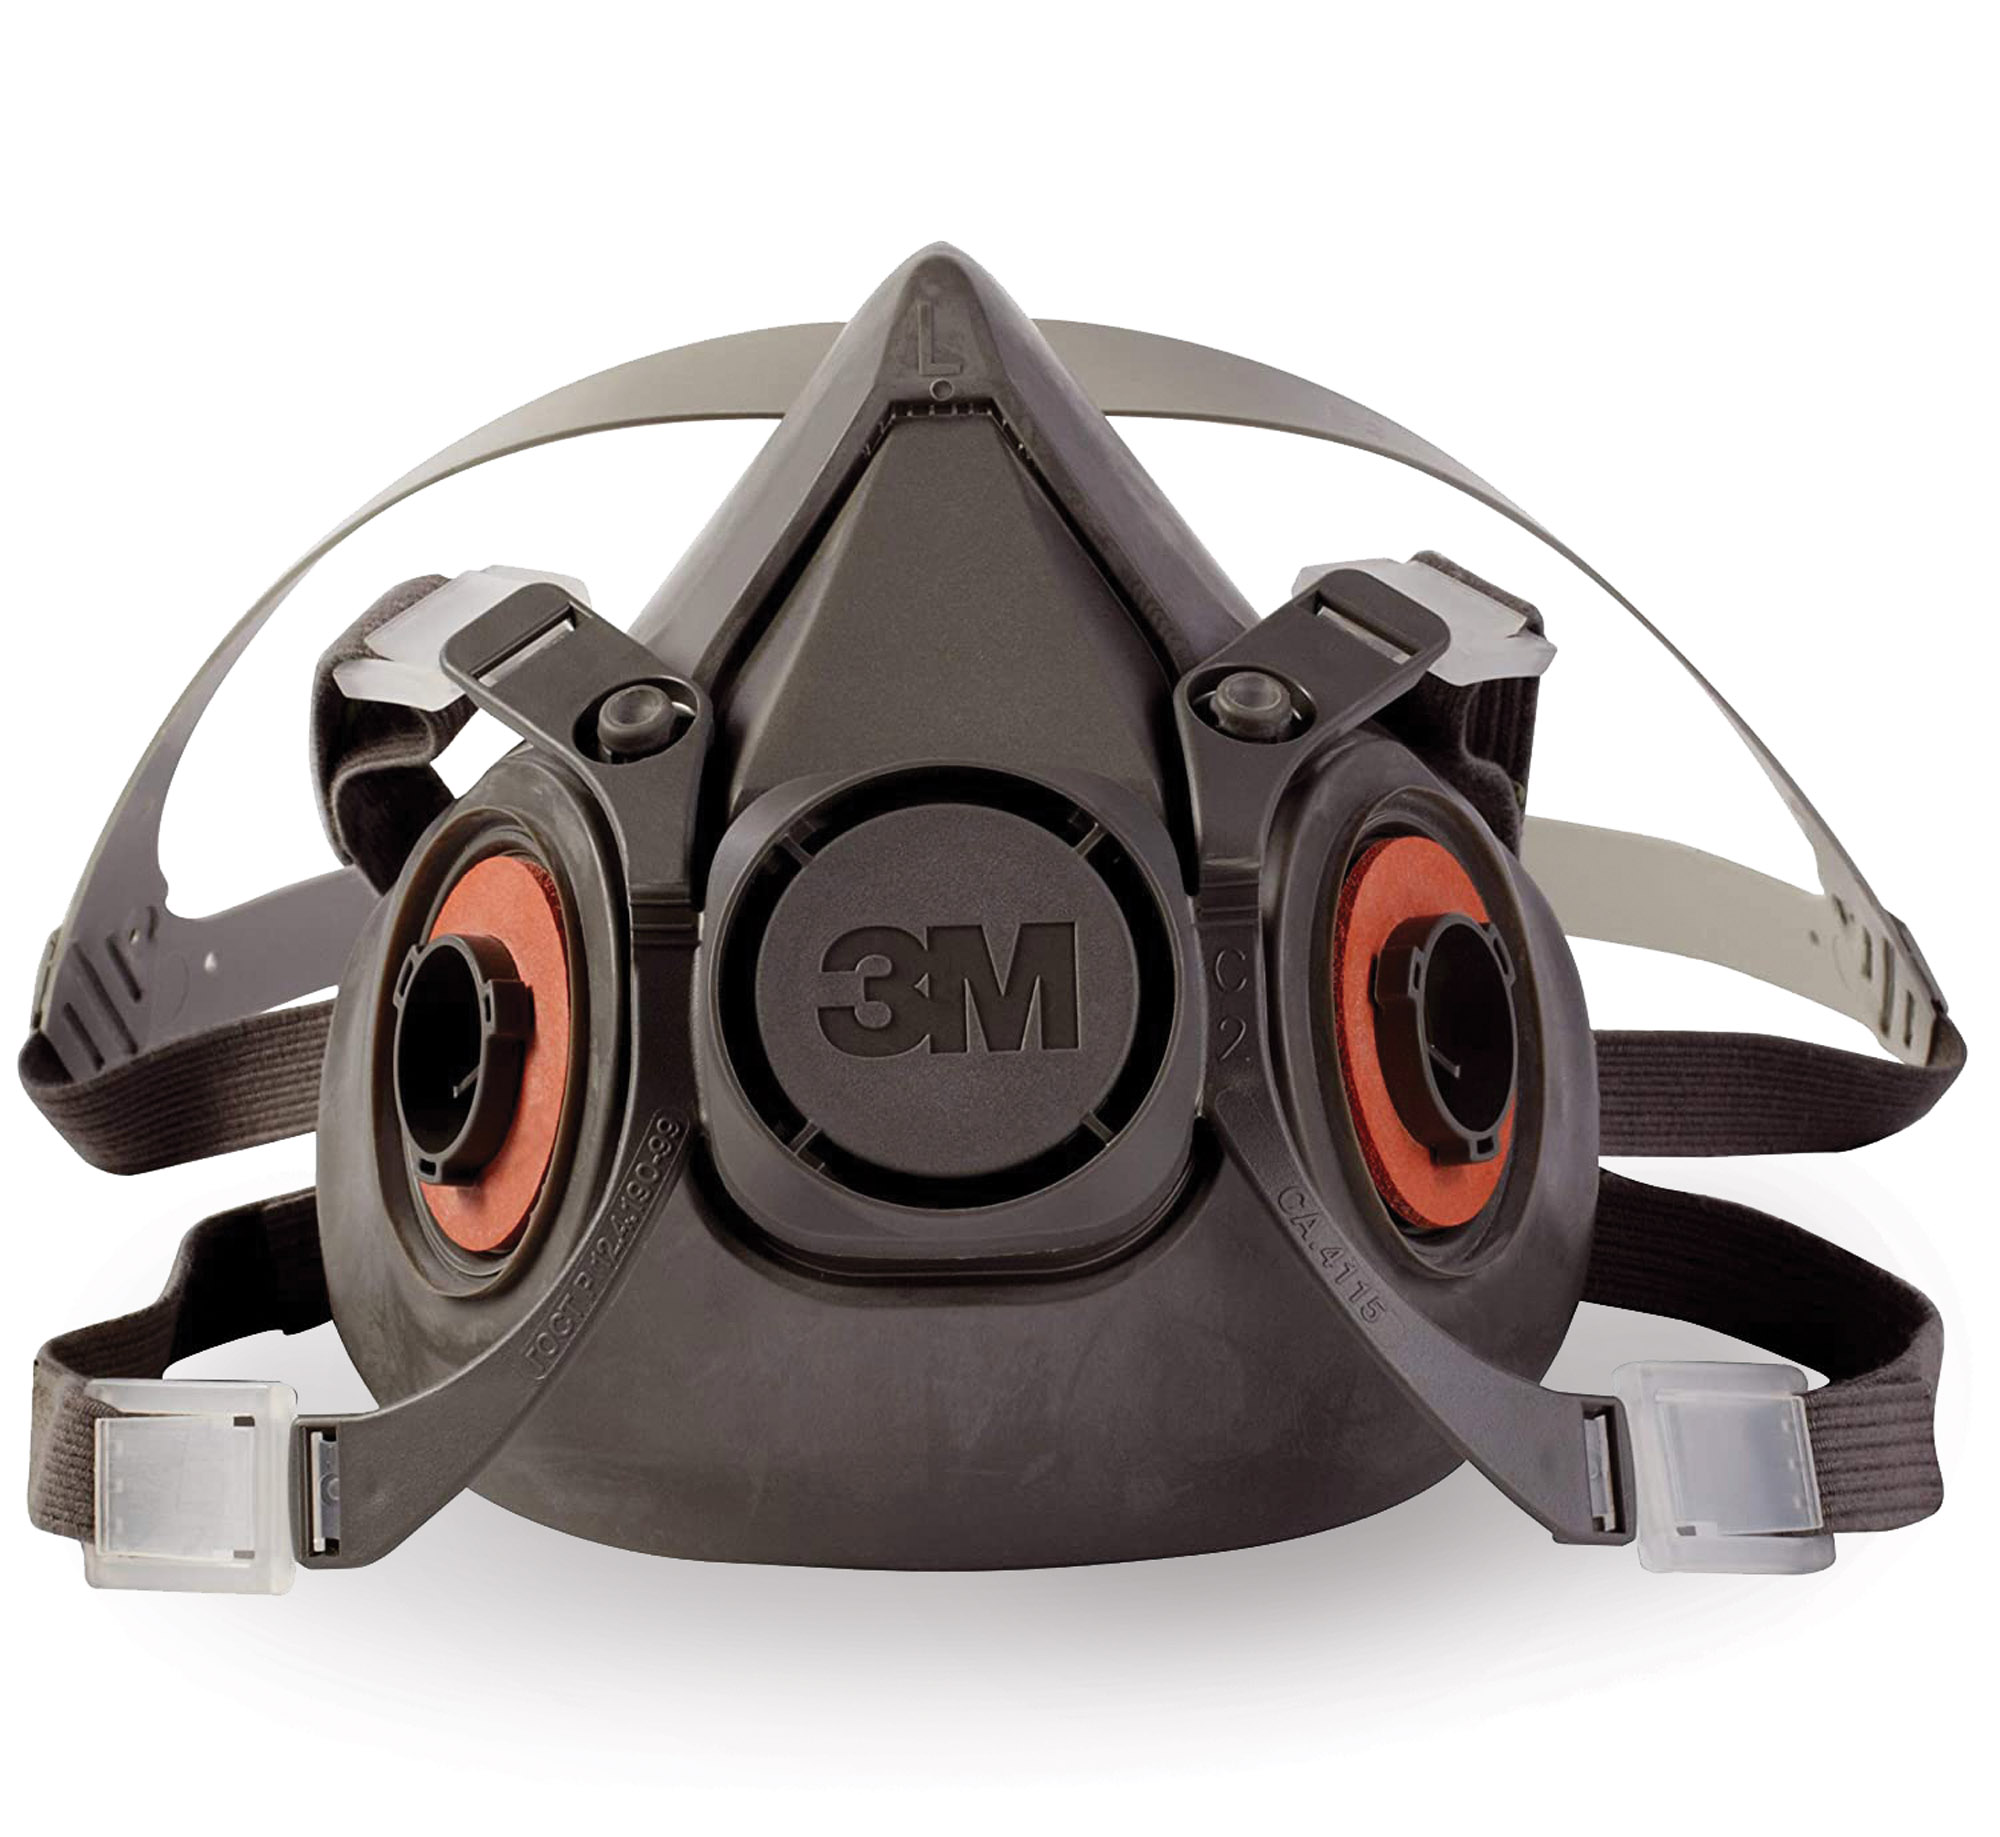 Protect your lungs and brain from dust, particulates, and hazardous materials any time you work on the house with the NIOSH-approved, 6300 reusable cartridge respirator. Paired with safety glasses and gloves, a mask is essential restoration equipment. 3M, (888) 364-3577, 3M.com